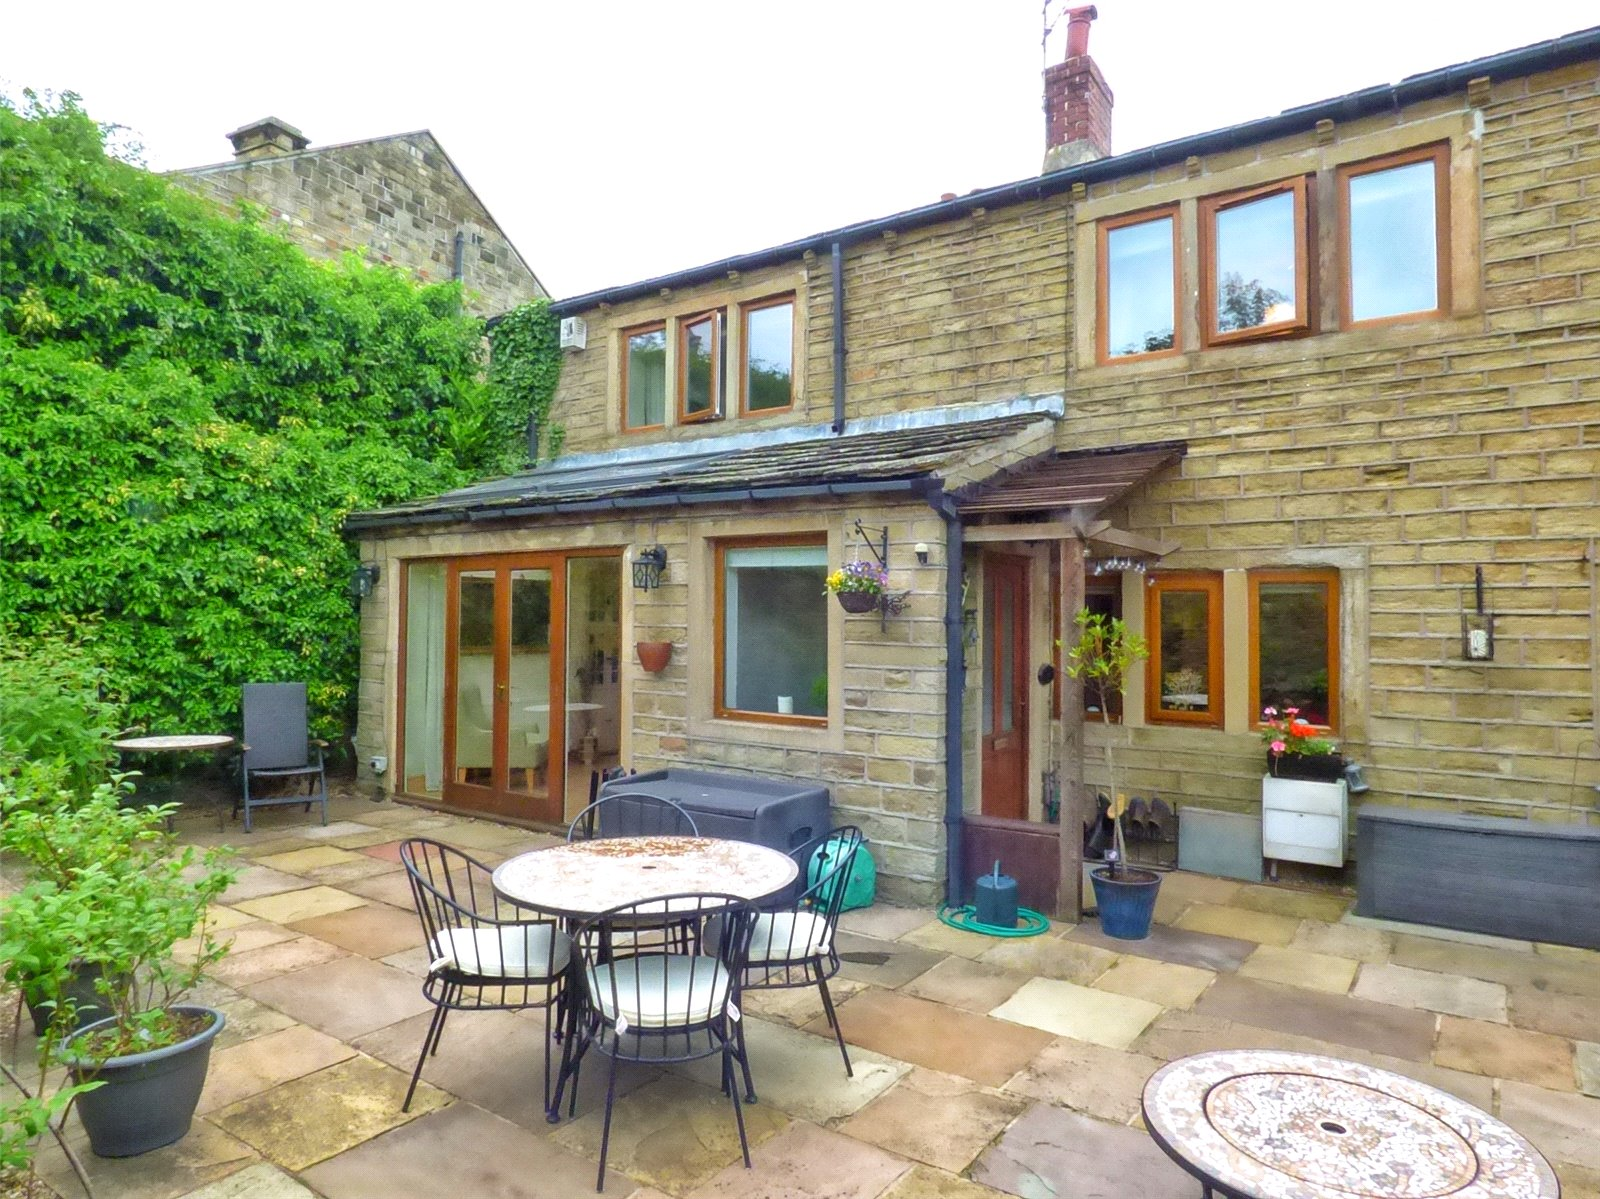 3 Bedrooms Terraced House for sale in Round Hill Lane, Upper Heaton, Huddersfield, West Yorkshire, HD5